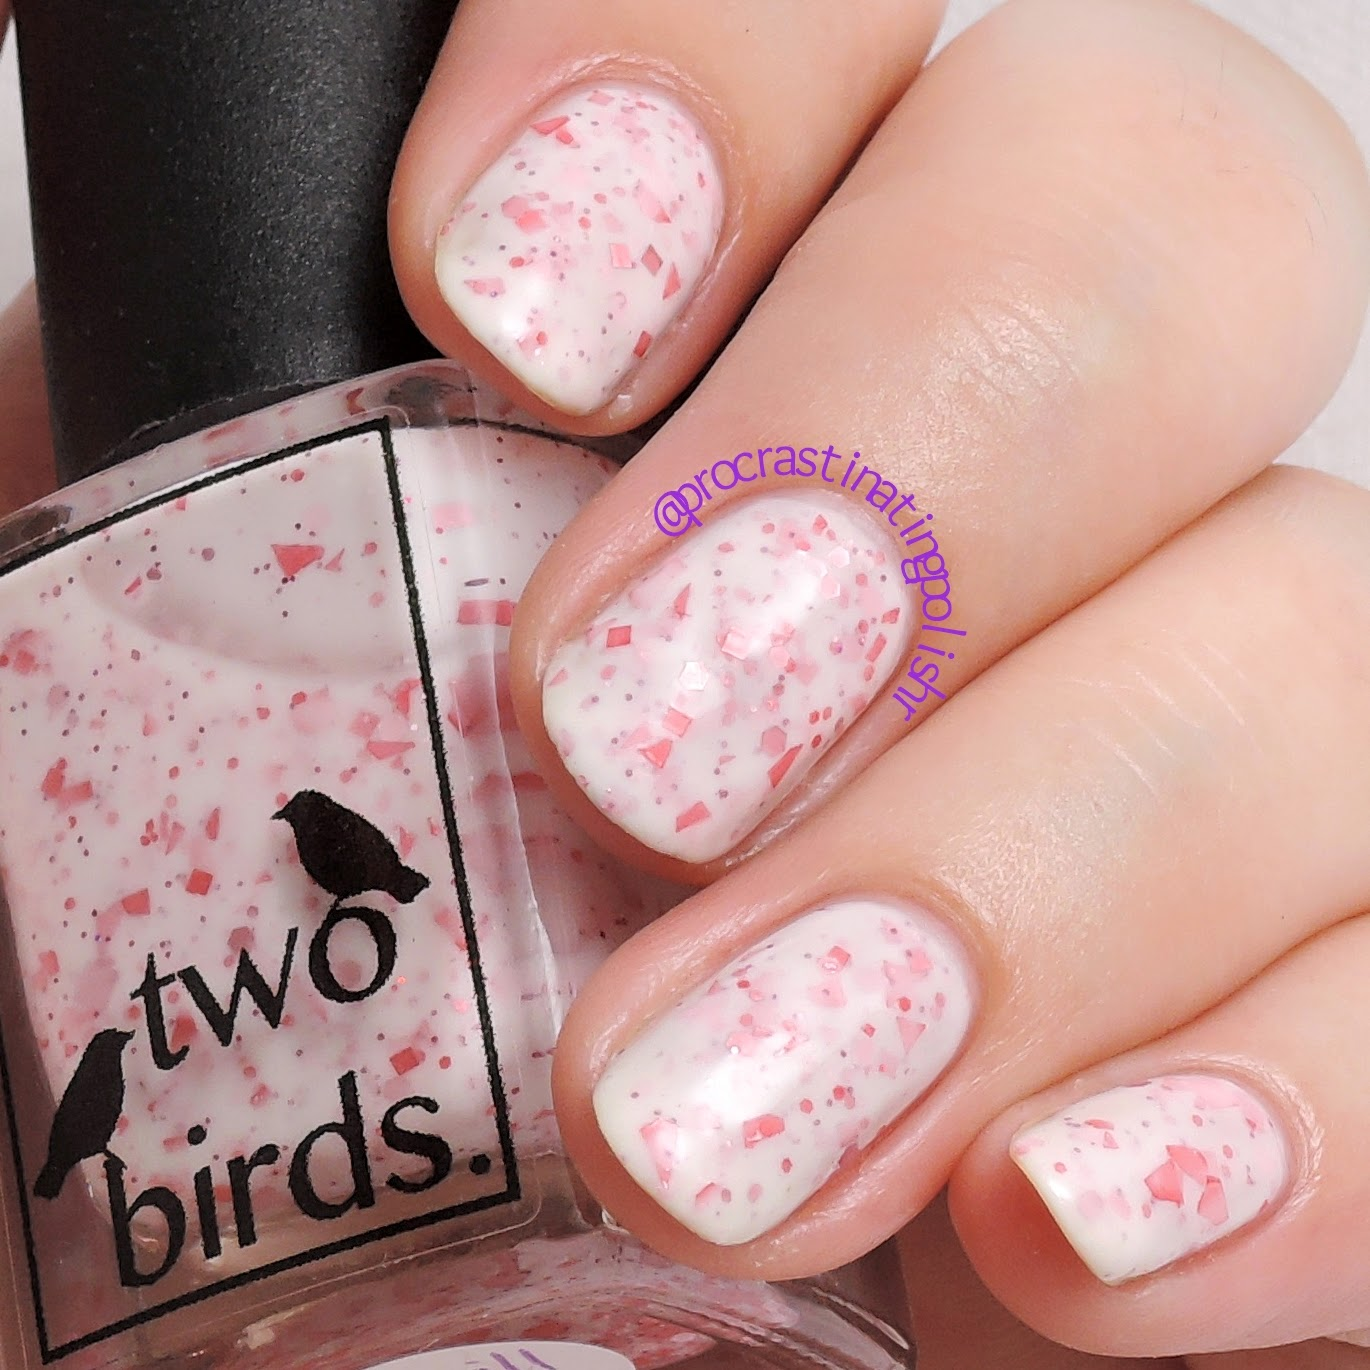 Two Birds Lacquer - The Thrill of the Thought